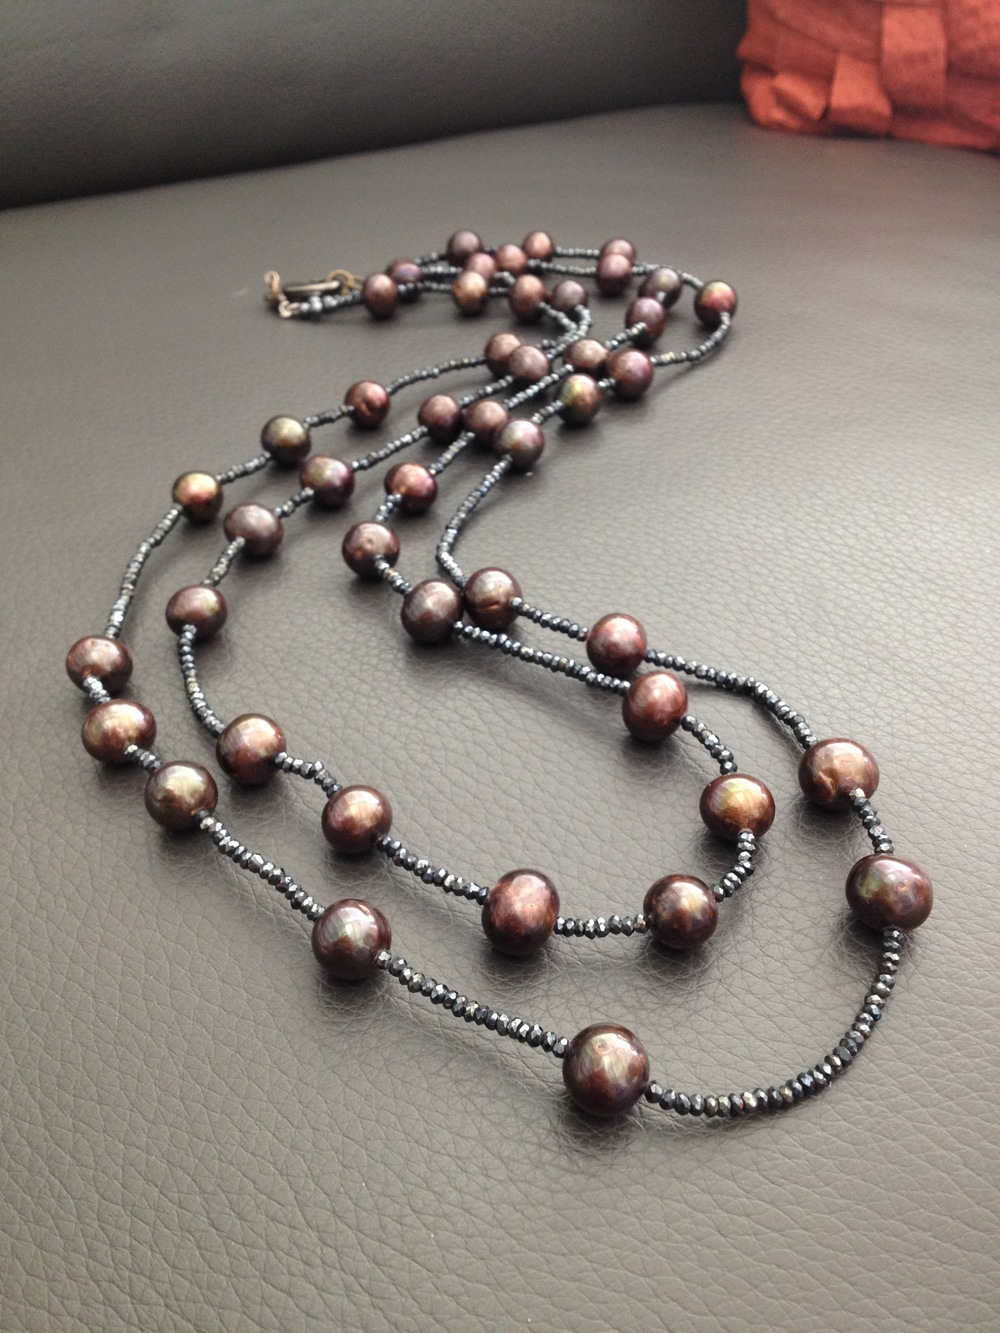 Pearl and hematite necklace #jewelry #necklace #phyllisclark